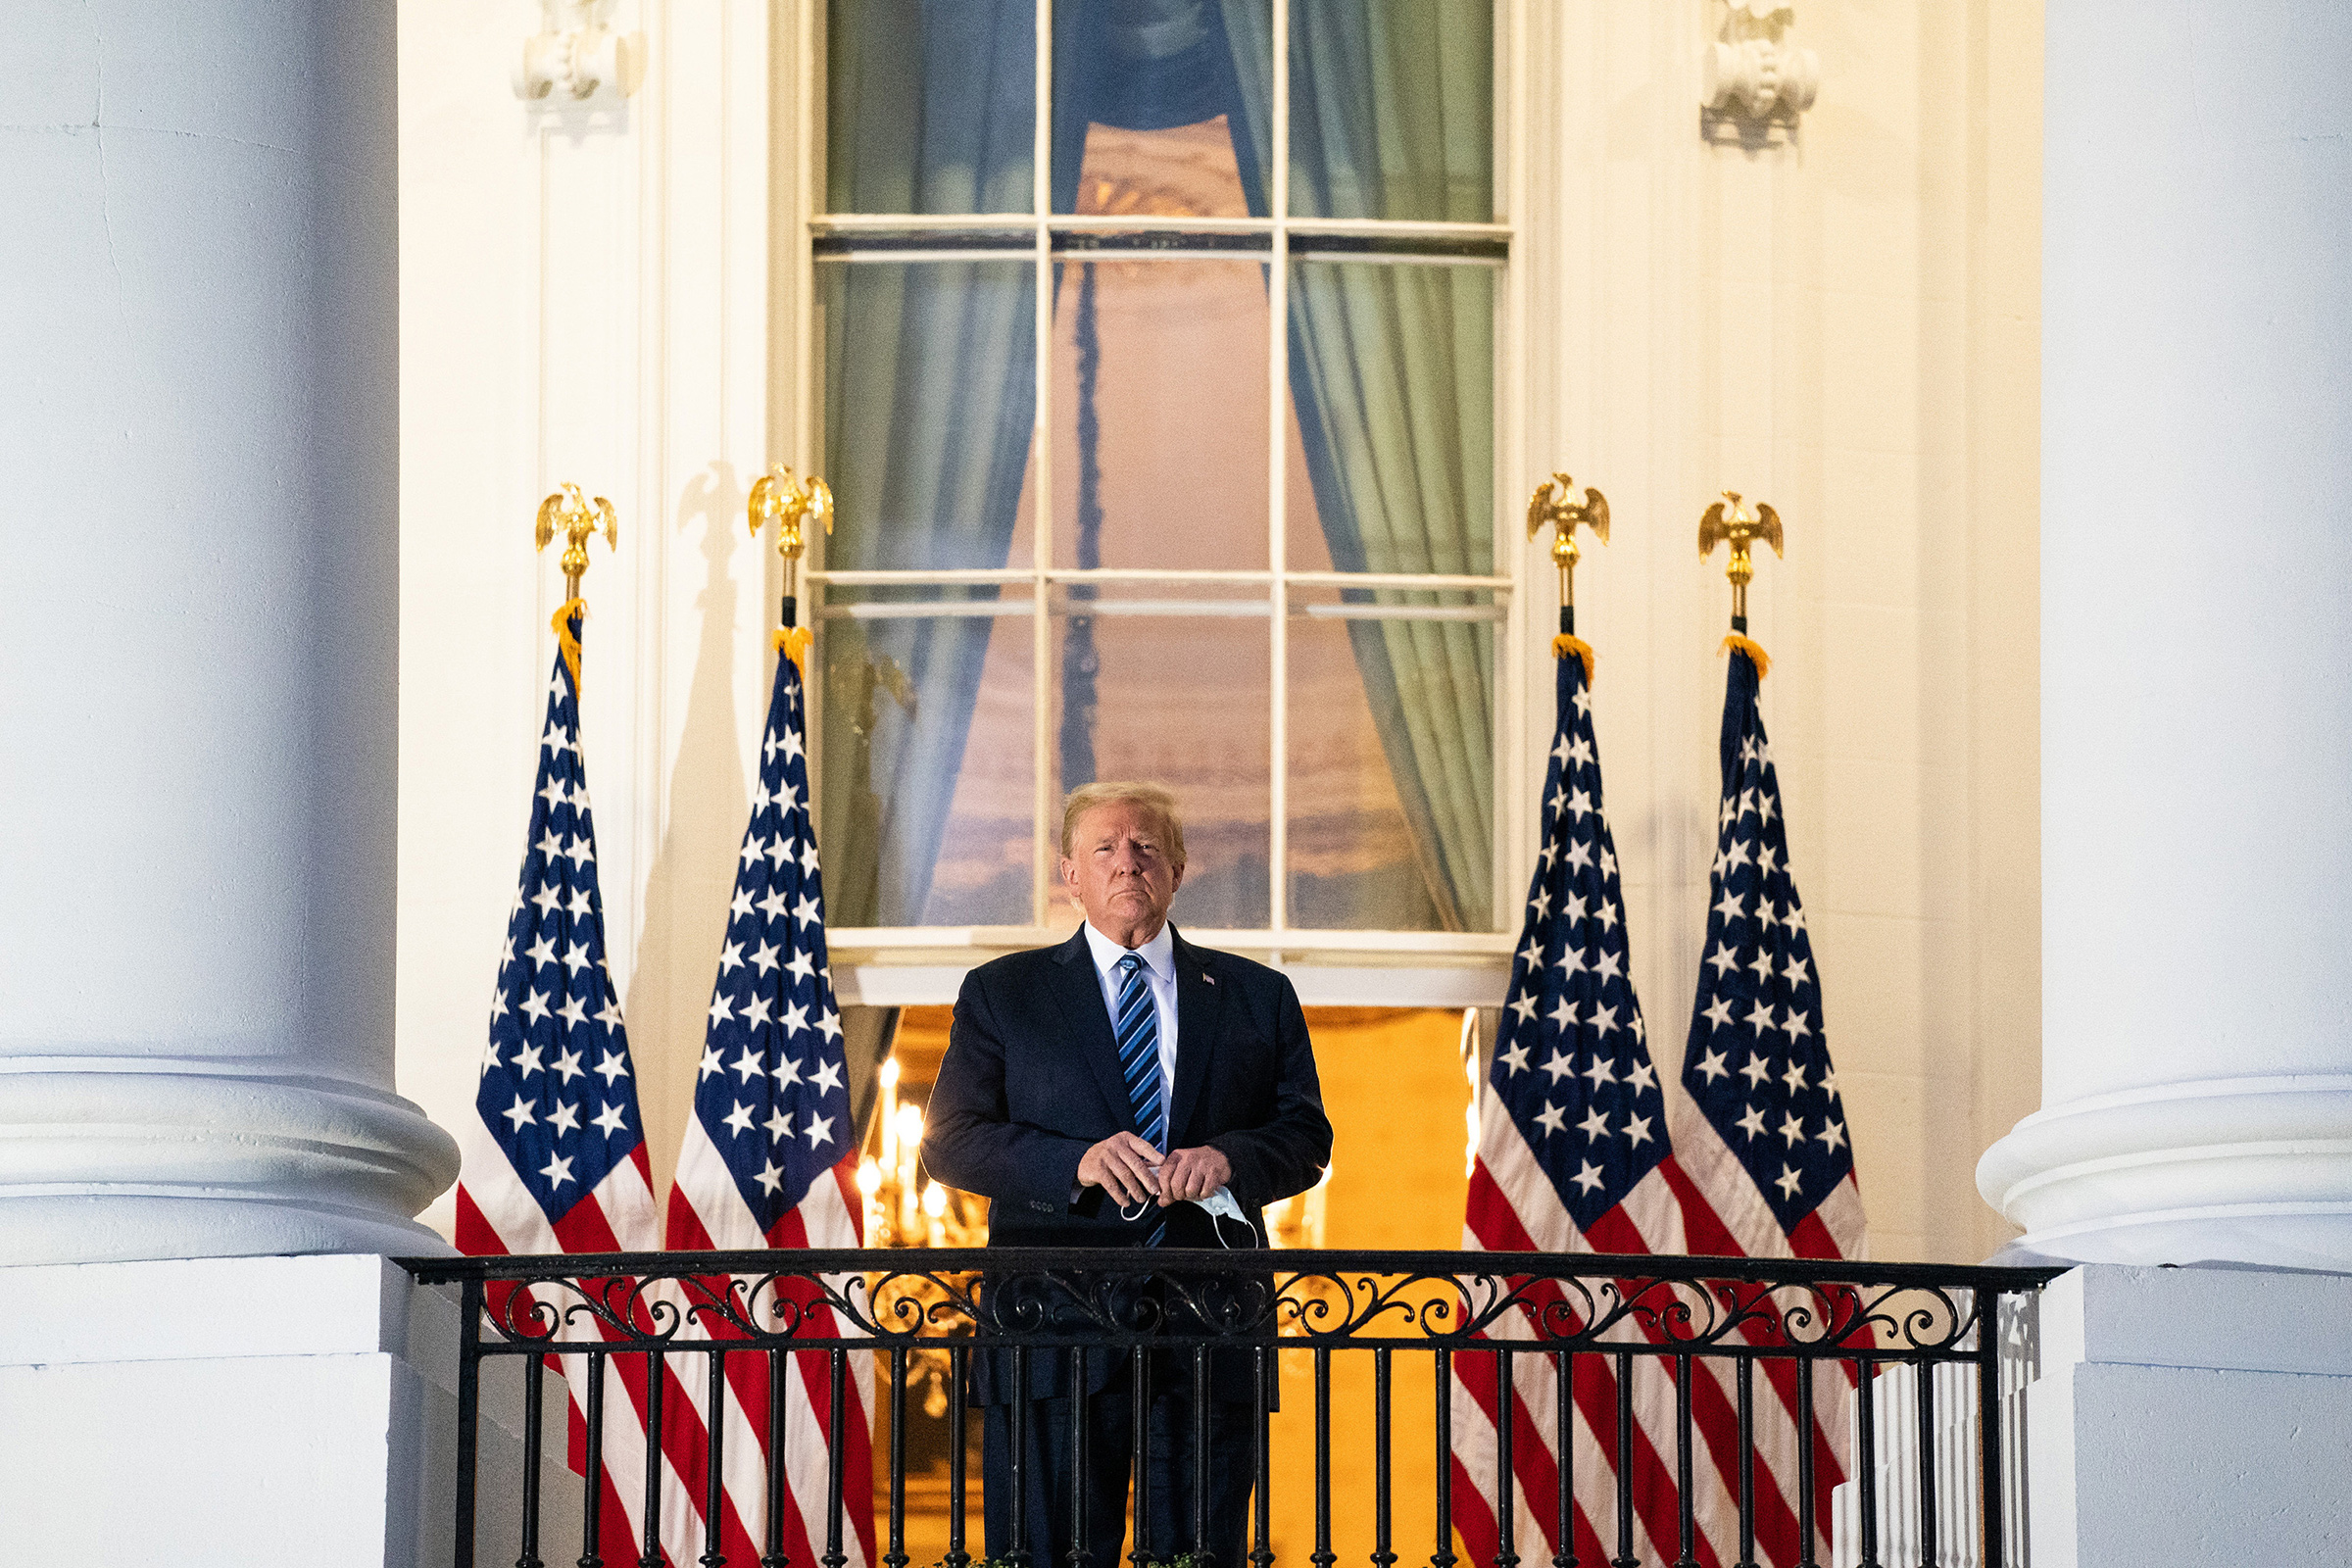 President Donald Trump stands on the Truman Balcony upon returning to the White House on Oct. 5 after testing positive for COVID-19 and spending four days at the the Walter Reed Medical Center in Bethesda, Md.